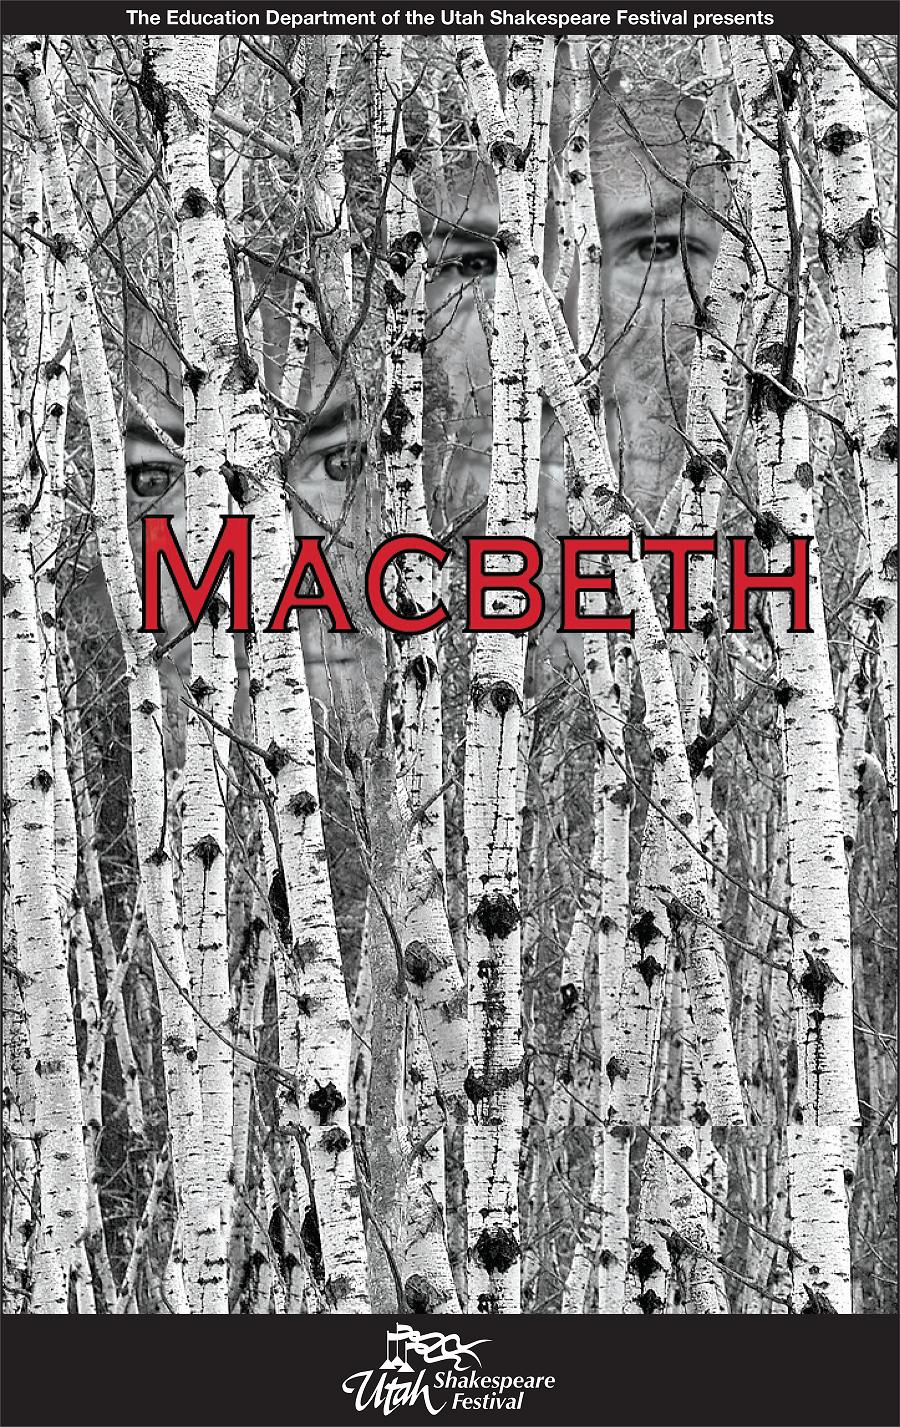 Macbeth coming to VVHS next week